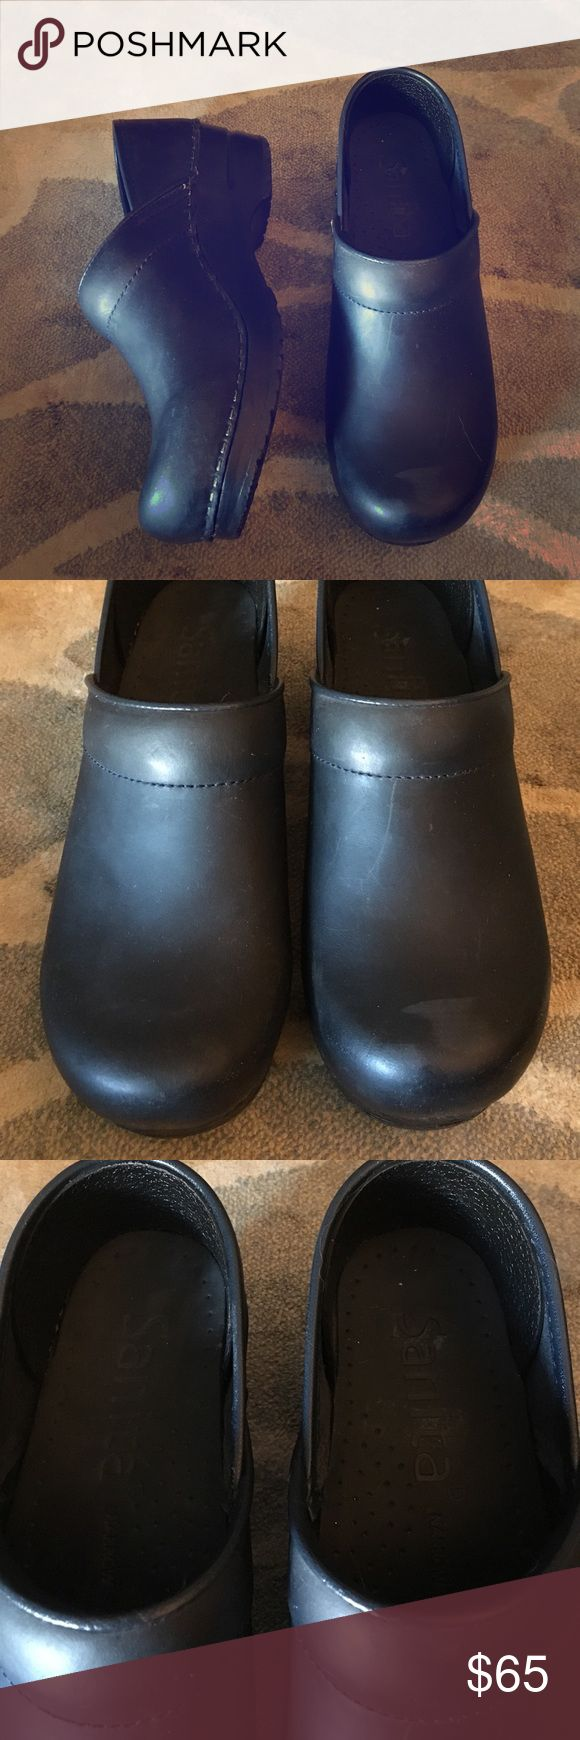 SANITA//navy clogs 36 soles are perfect just minor scuffing on the outsides! would look perfect with some navy shoe polish. size 36 Sanita Shoes Mules & Clogs